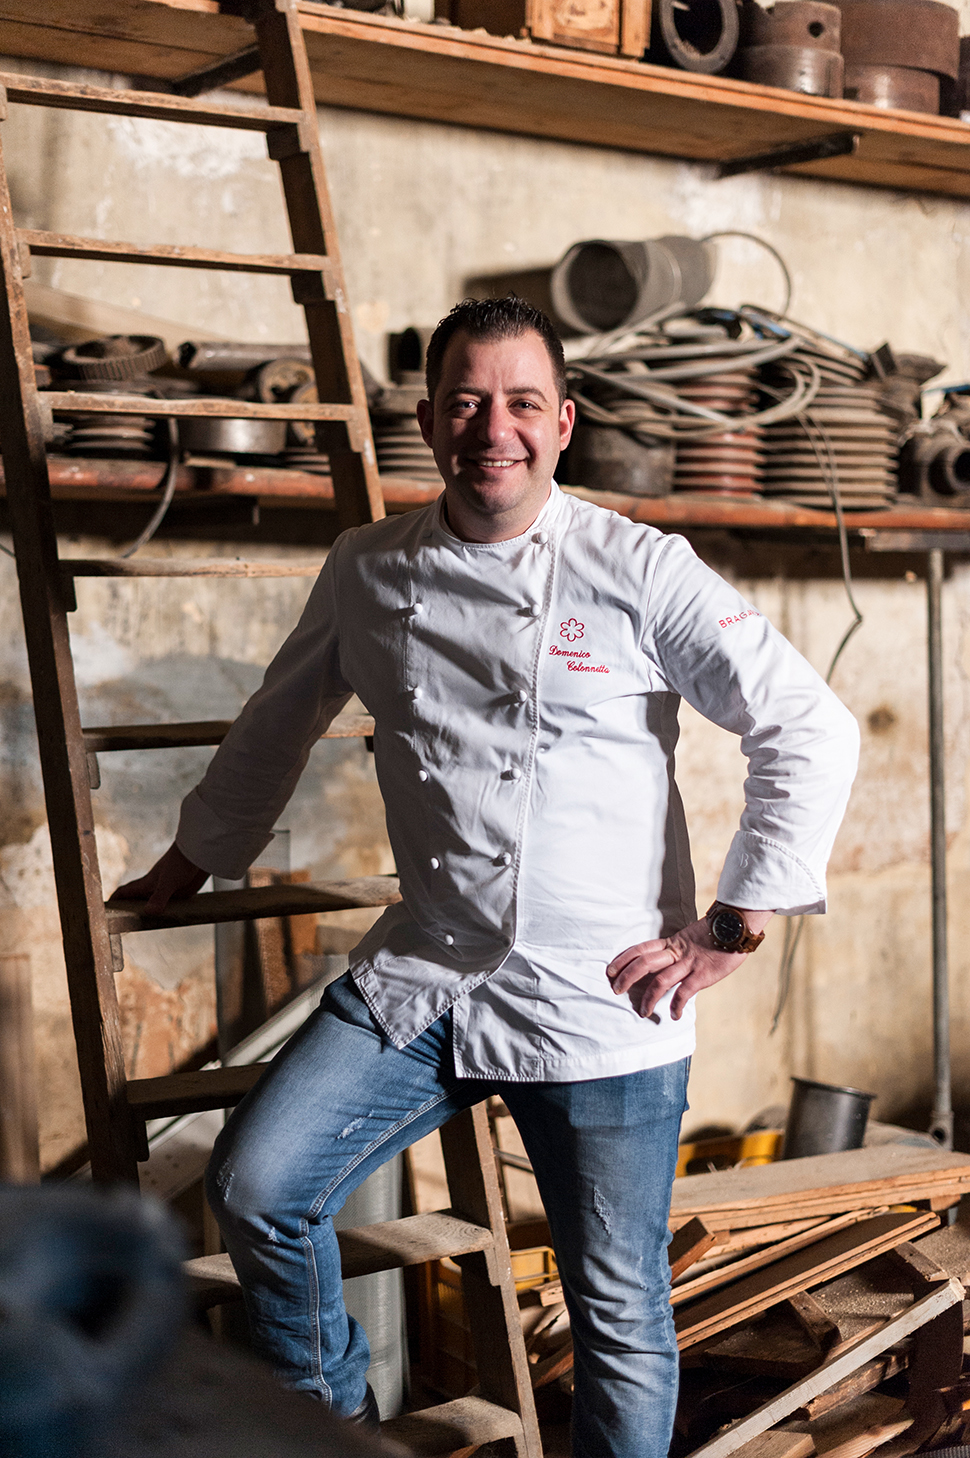 4 Chef Domenico Colonnetta